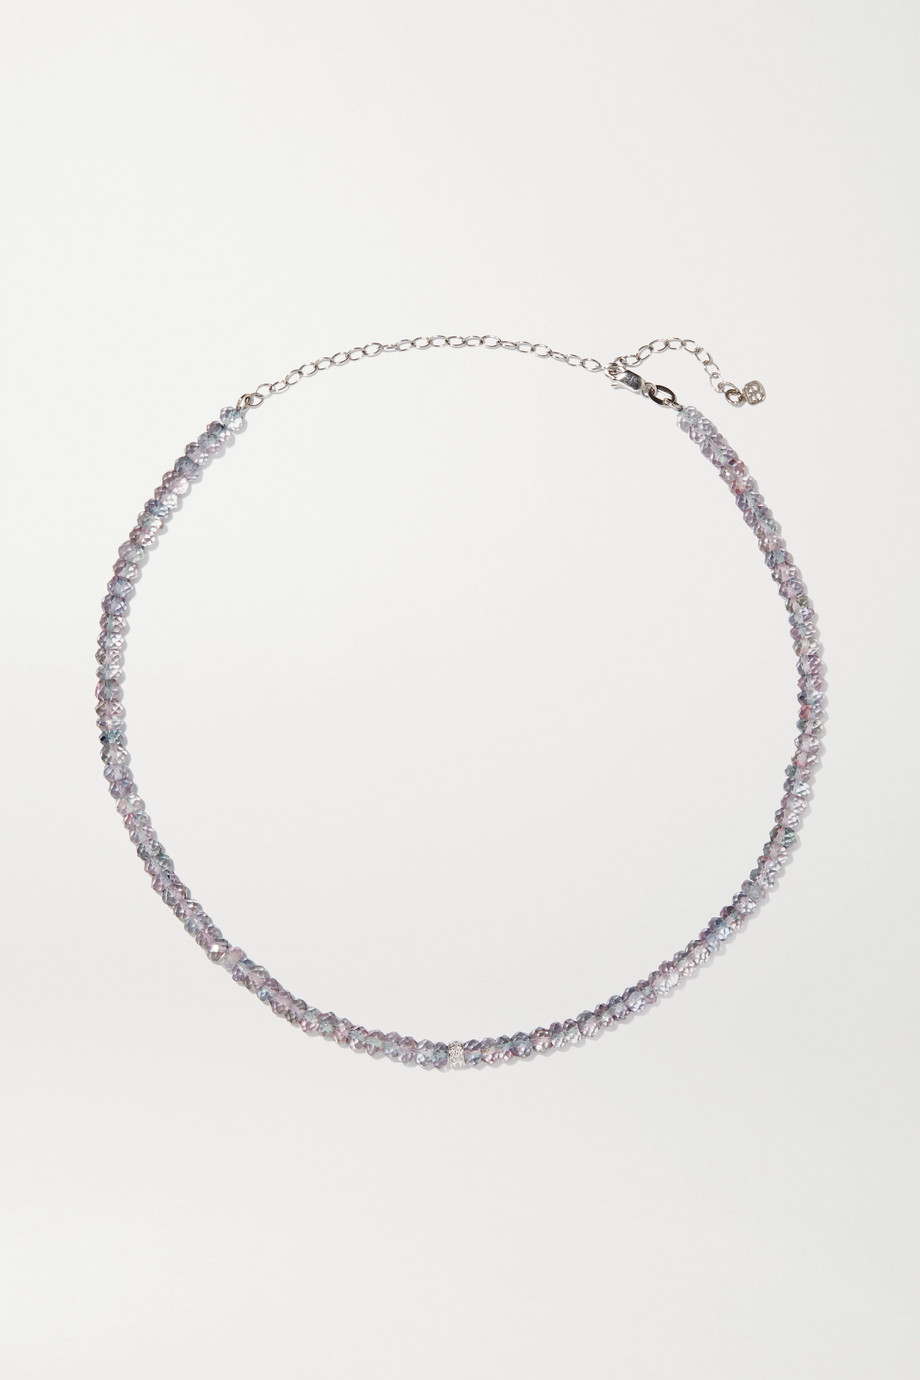 Sydney Evan Mystic Rainbow 18-karat gold, quartz and diamond choker